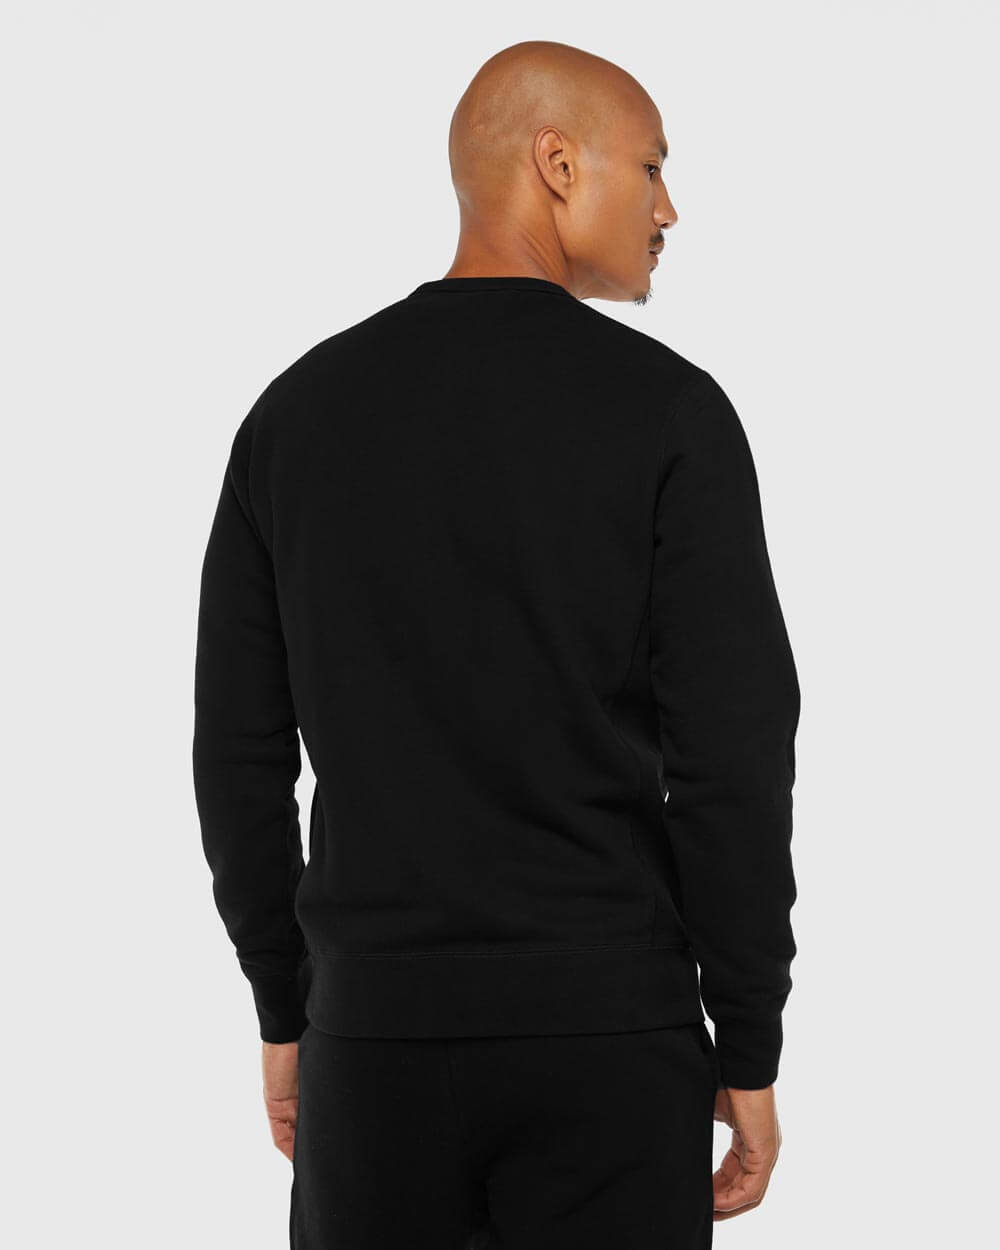 MID-WEIGHT FRENCH TERRY CREW - BLACK